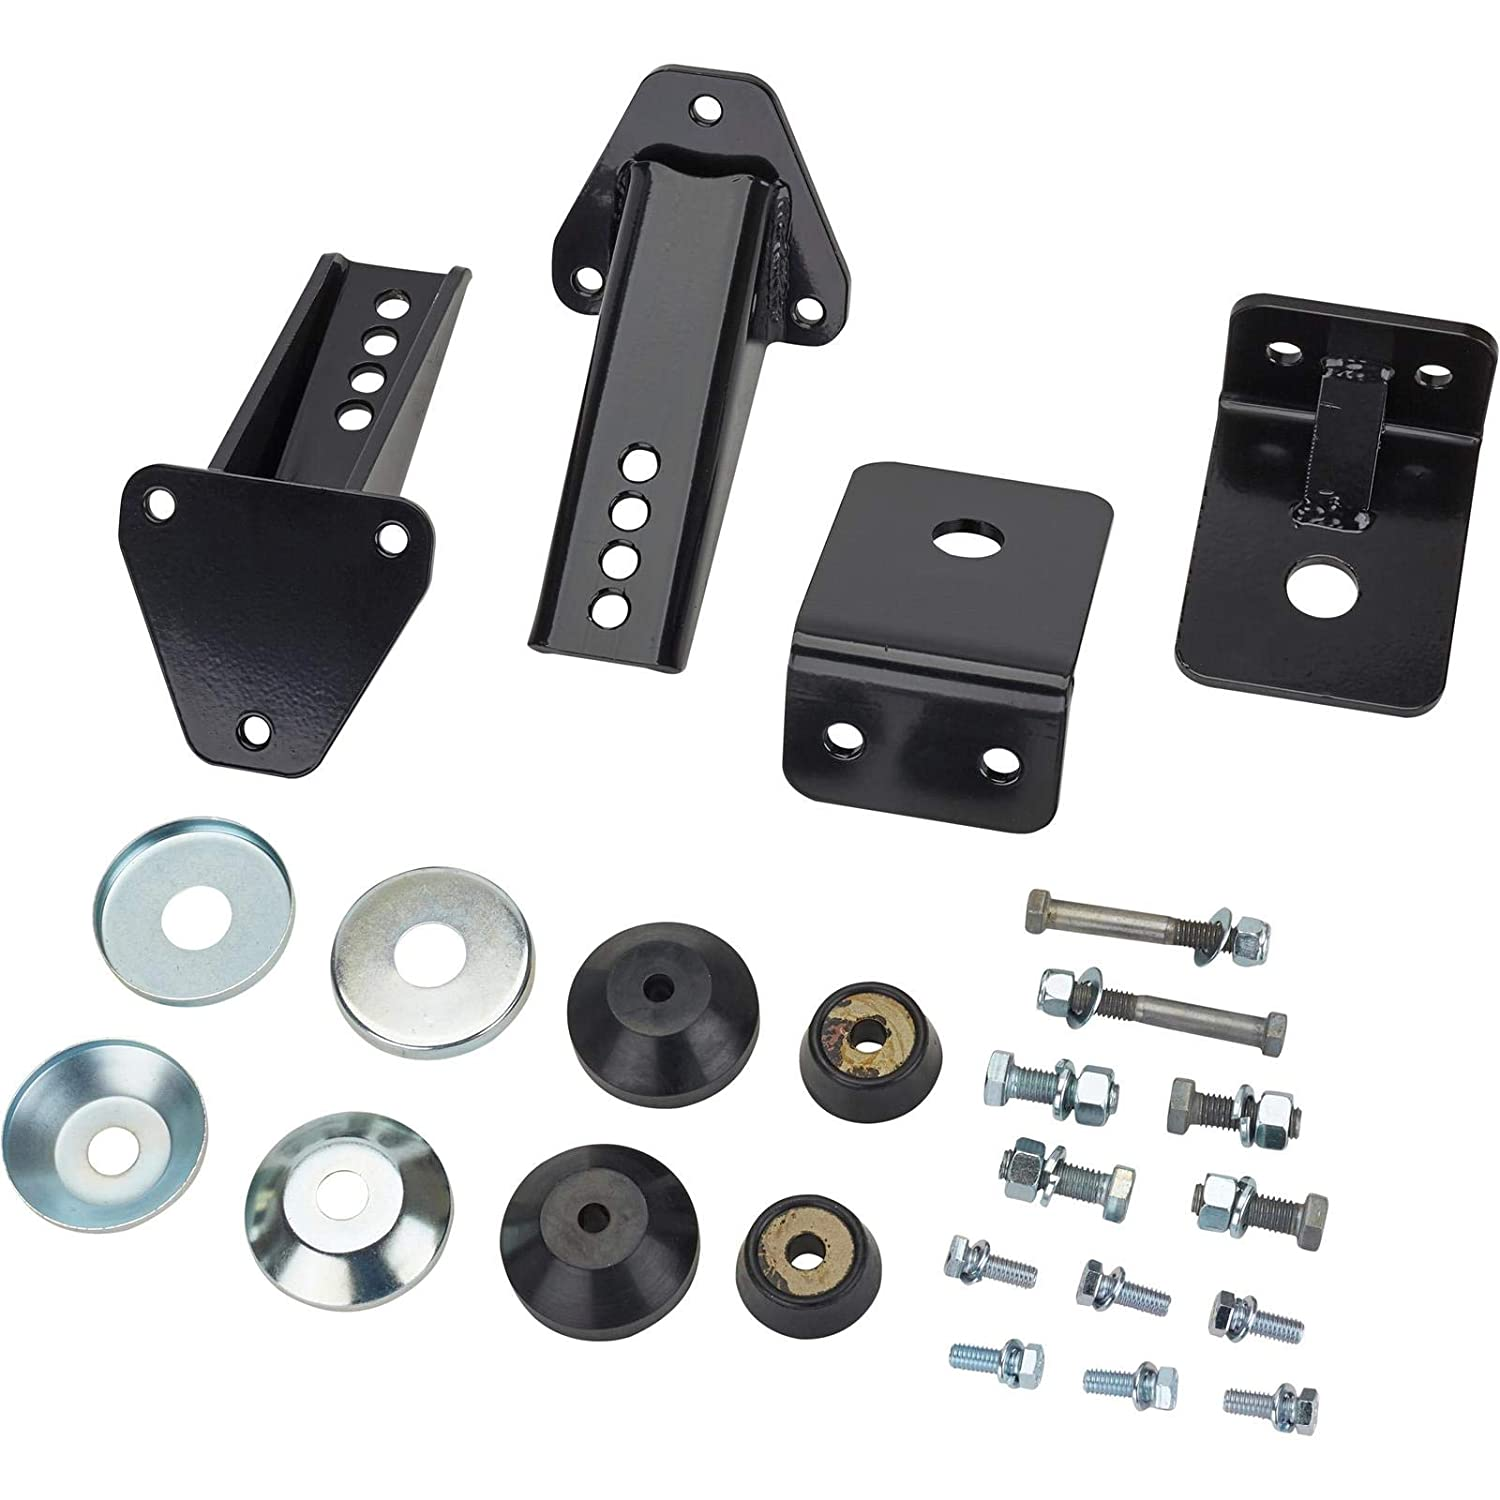 Fits Chevy to 1955-1959 Fits Chevy Pickup Motor Mounts